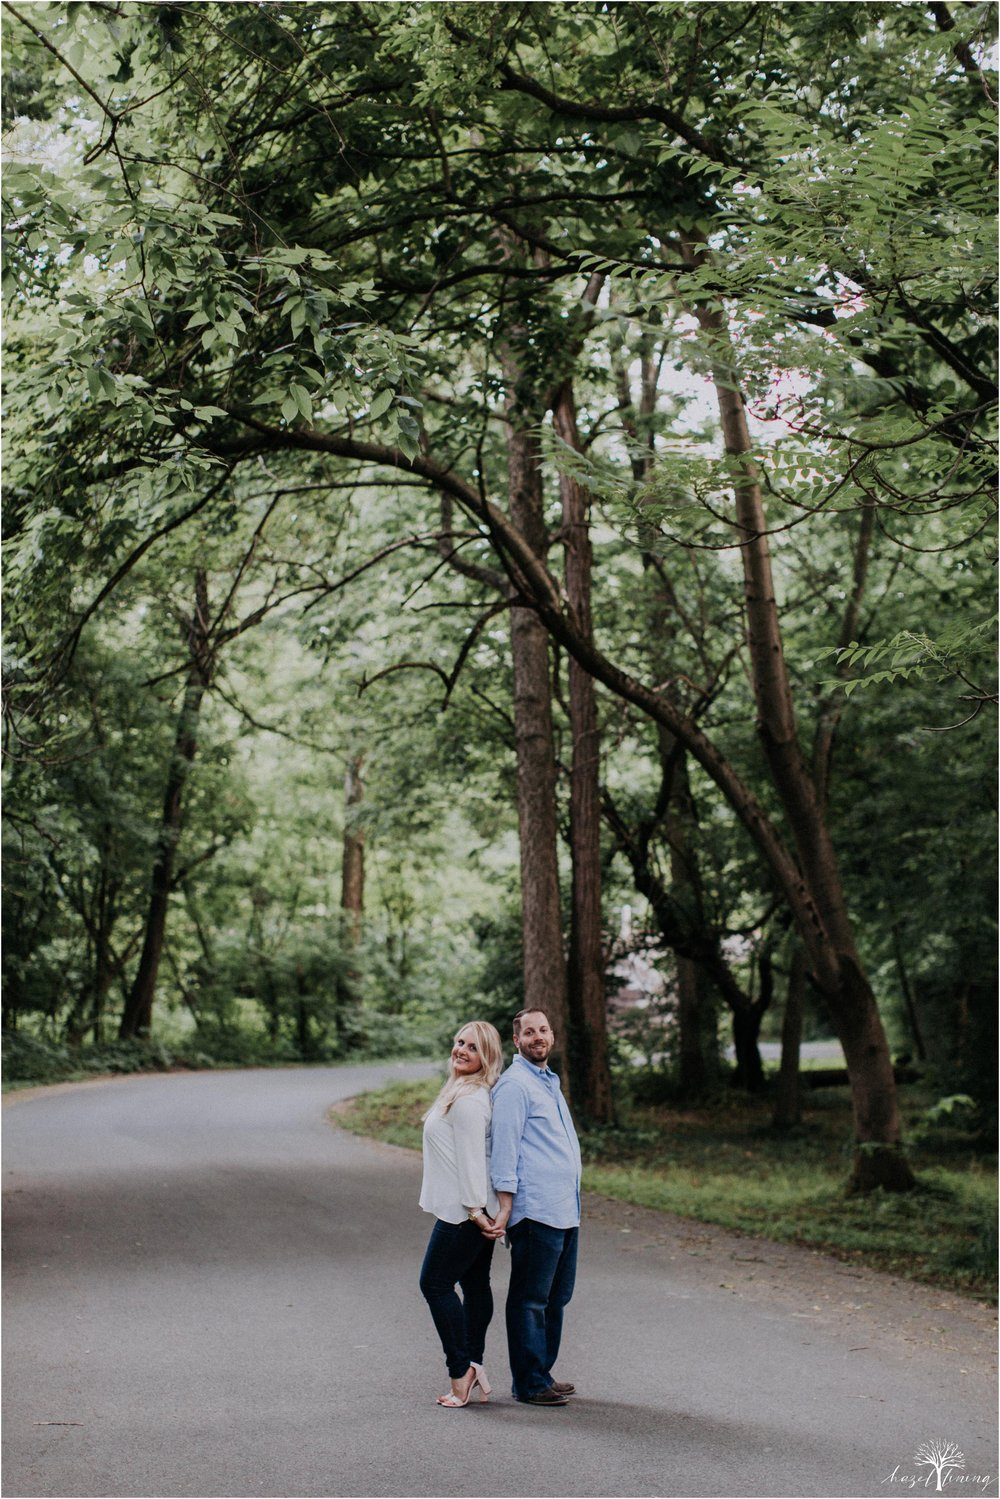 mel-mnich-john-butler-marietta-furnace-engagement-session-lancaster-county-pennsylvania-hazel-lining-travel-wedding-elopement-photography_0206.jpg